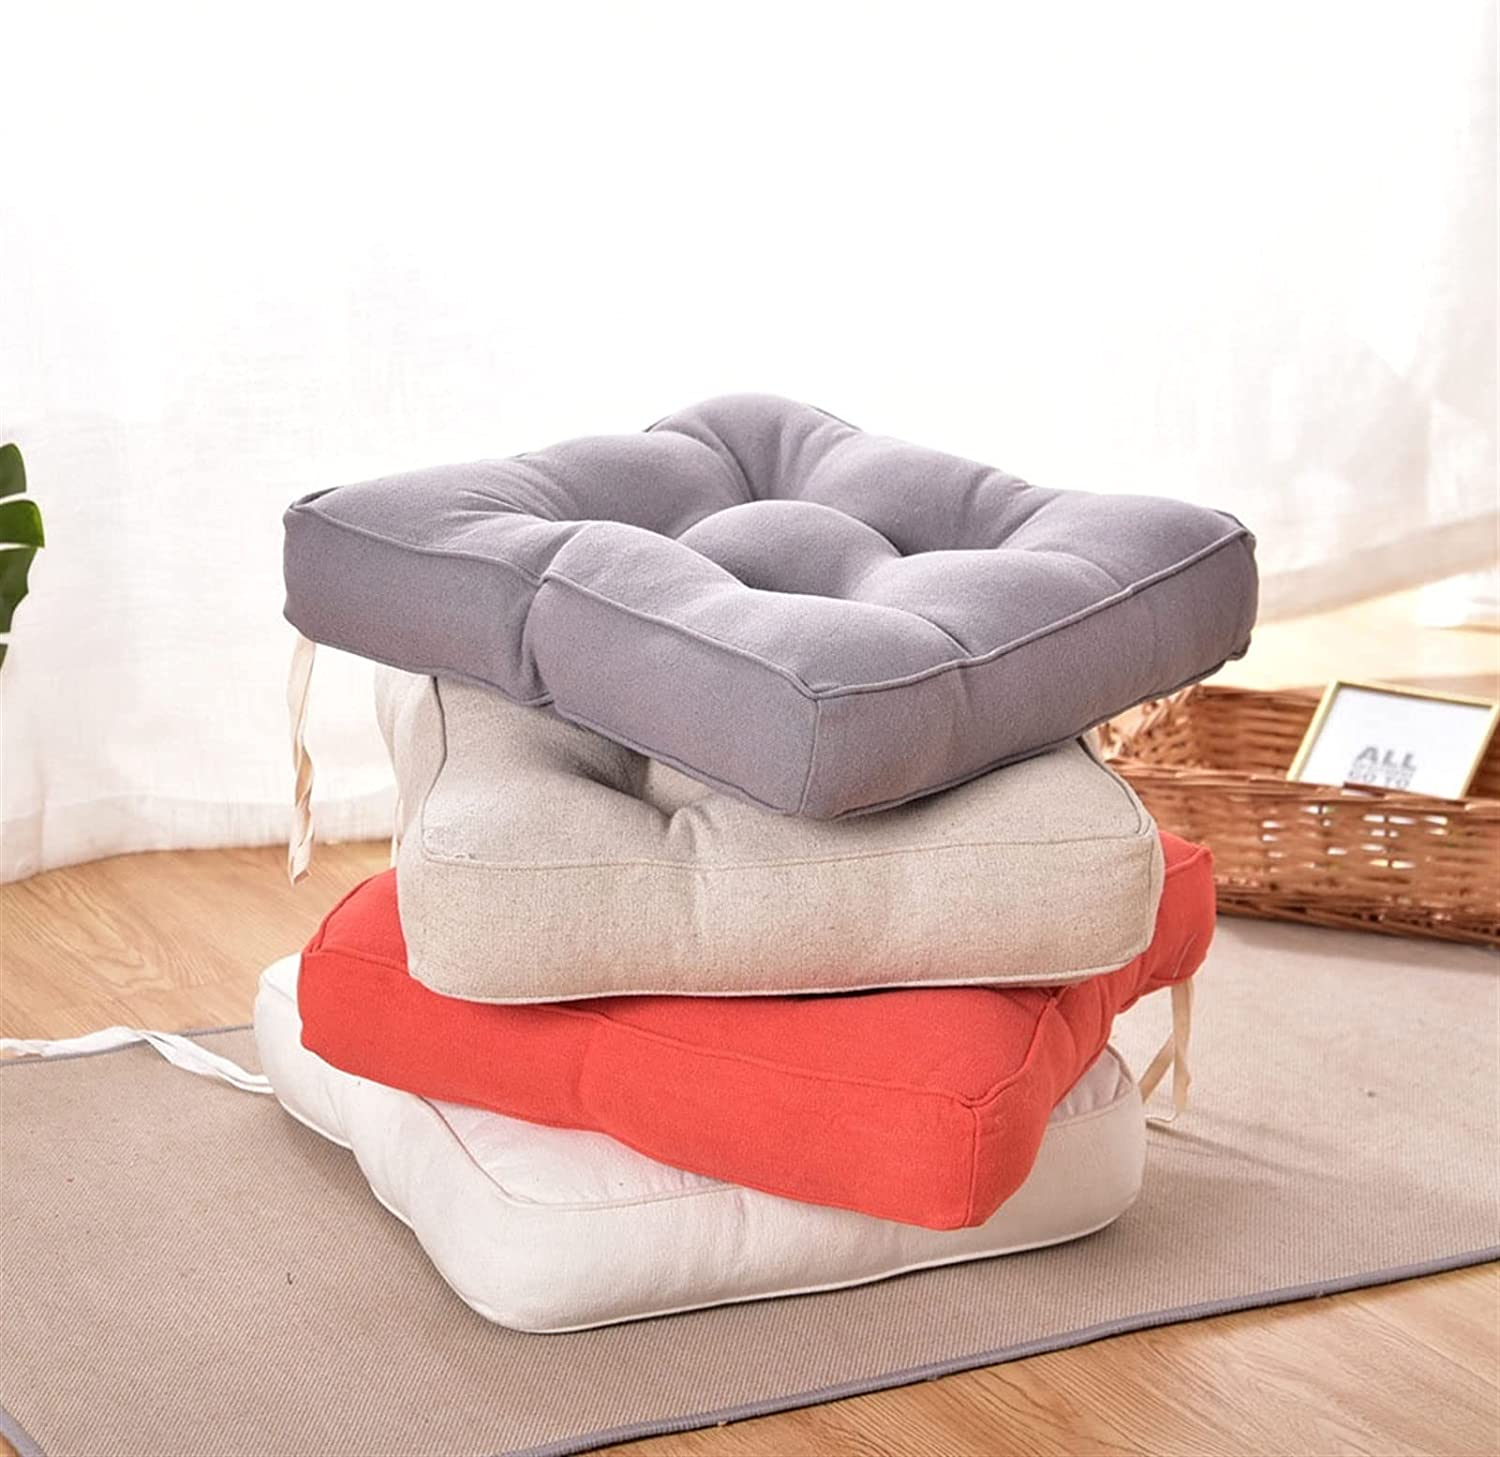 Free shipping on posting reviews Outdoor Garden Cushion 1PCS 40cm Square wit Pad Max 45% OFF Chair Back Seat